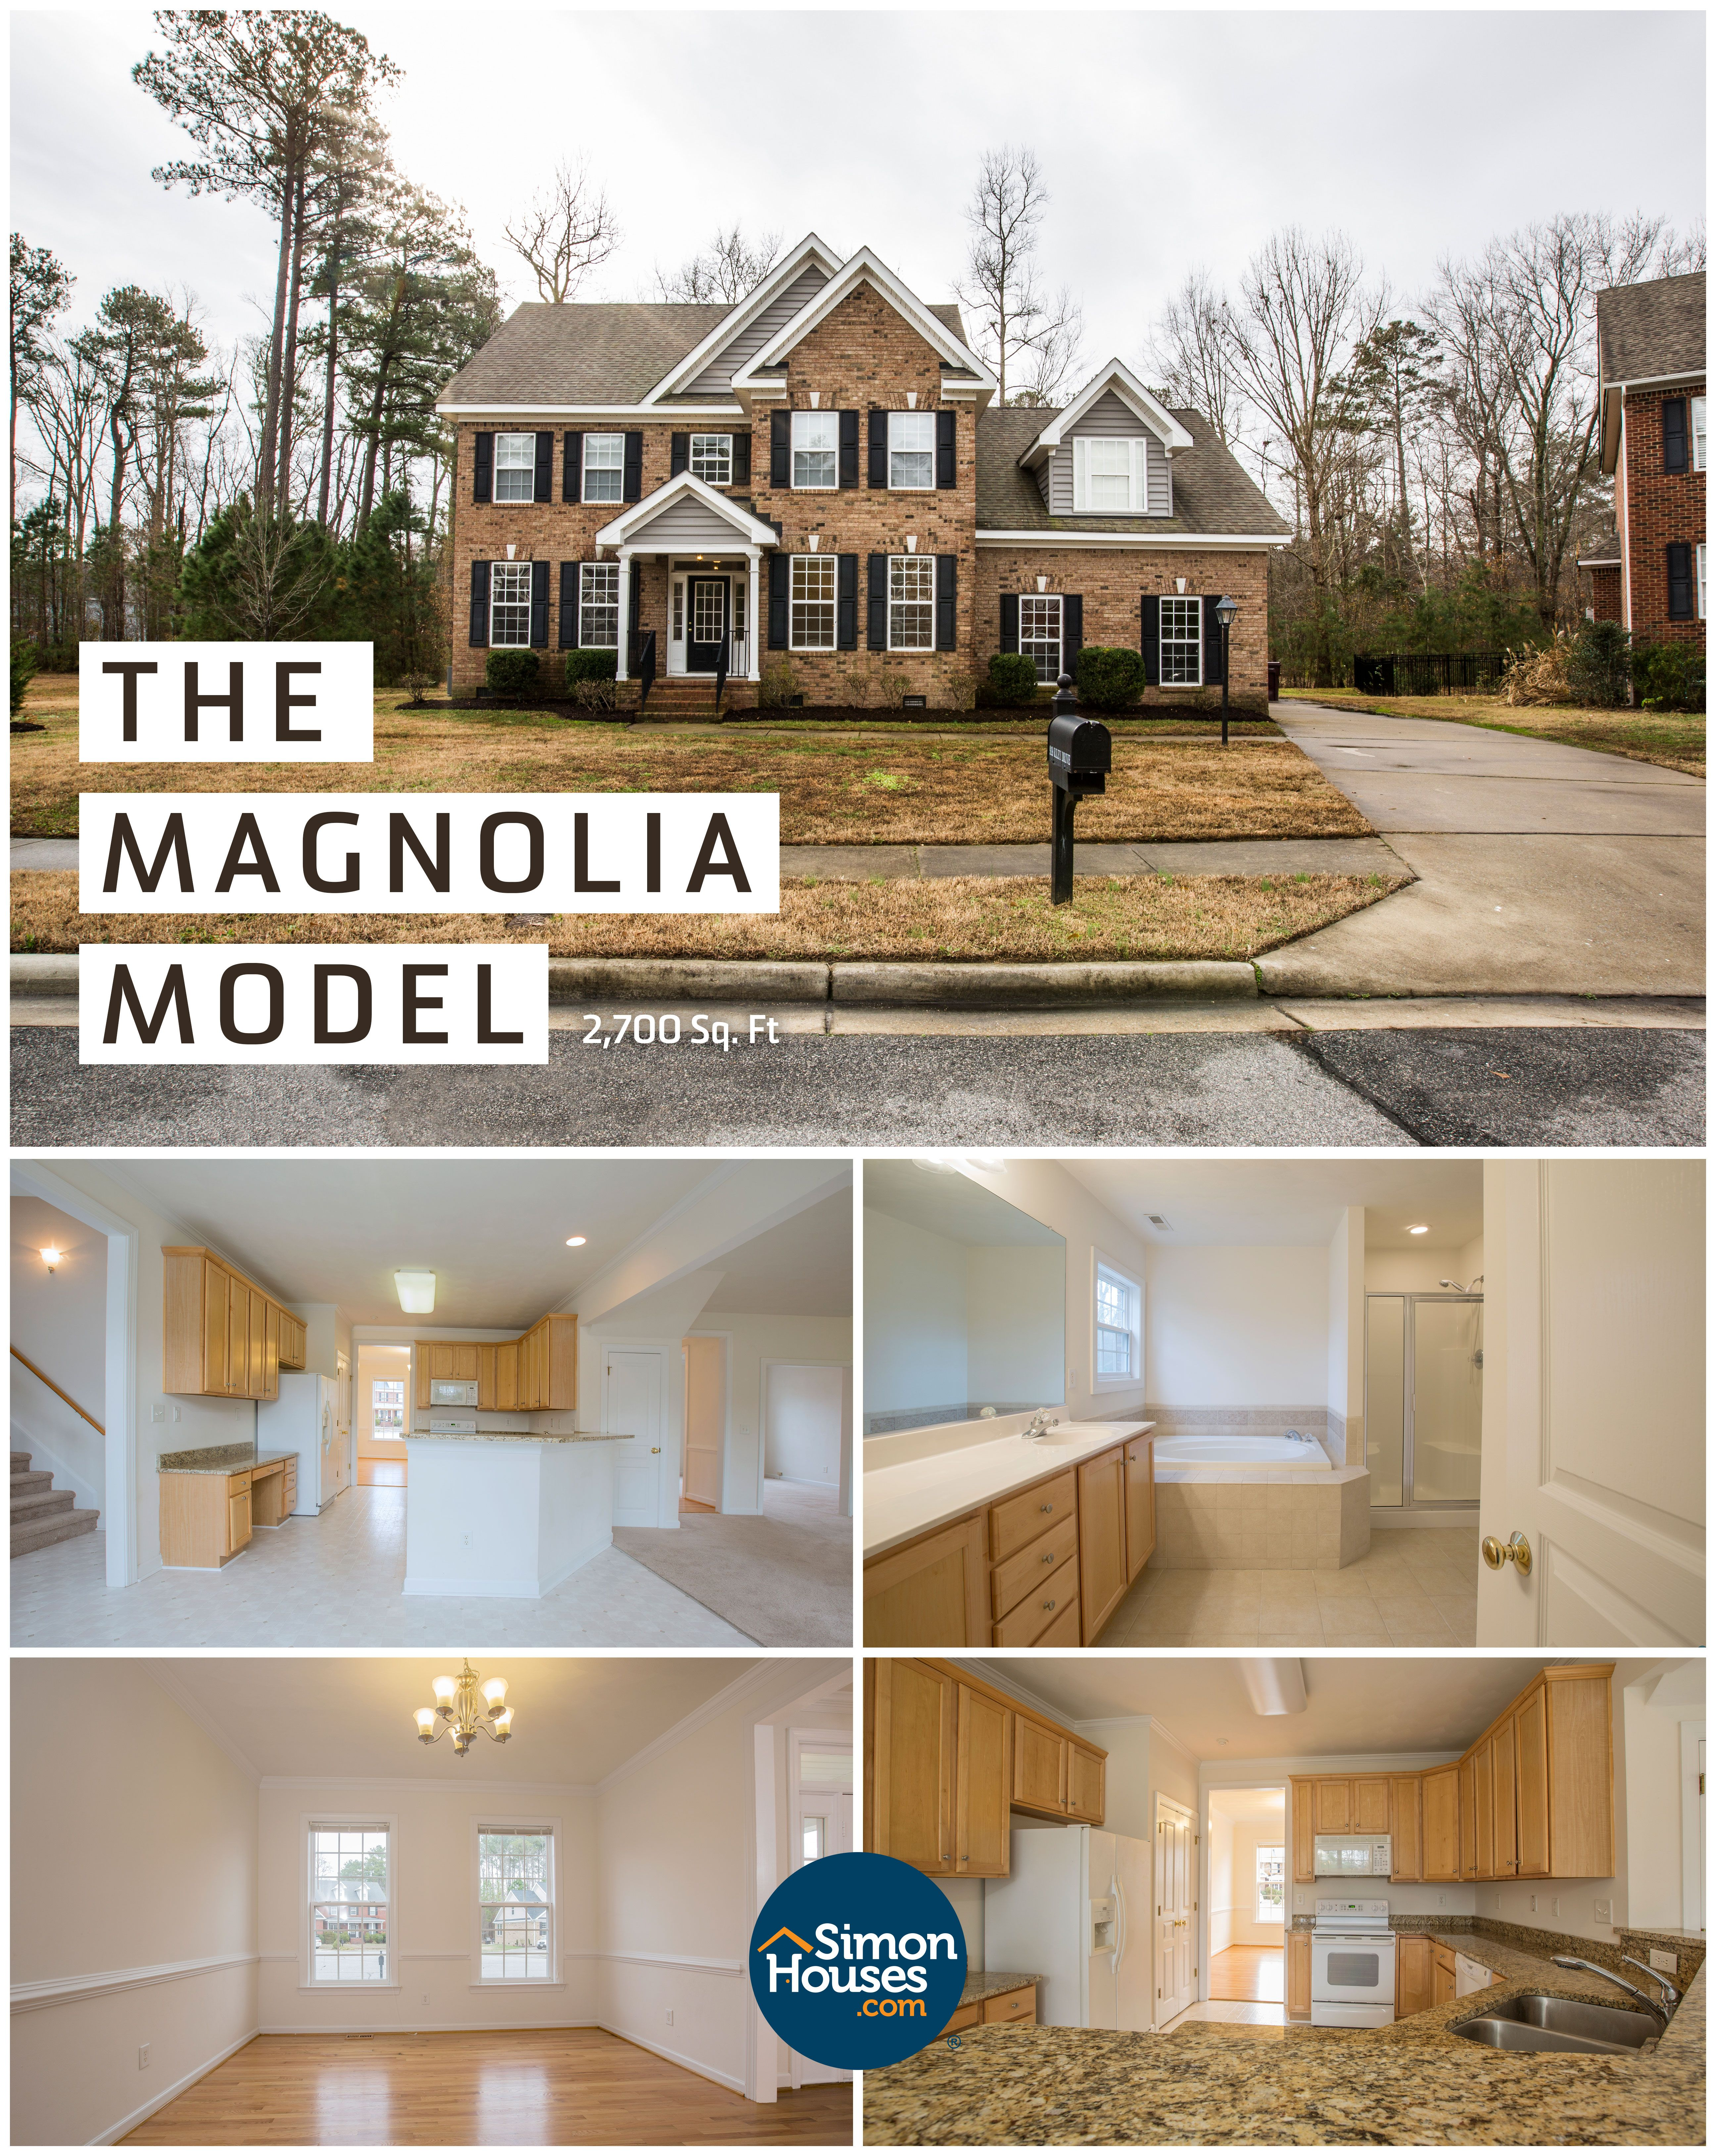 Build This Beautiful Home Model In Chesapeake Or Suffolk With An Amazing Local Builder You Can Build On You Custom Built Homes Local Builders Home Connections